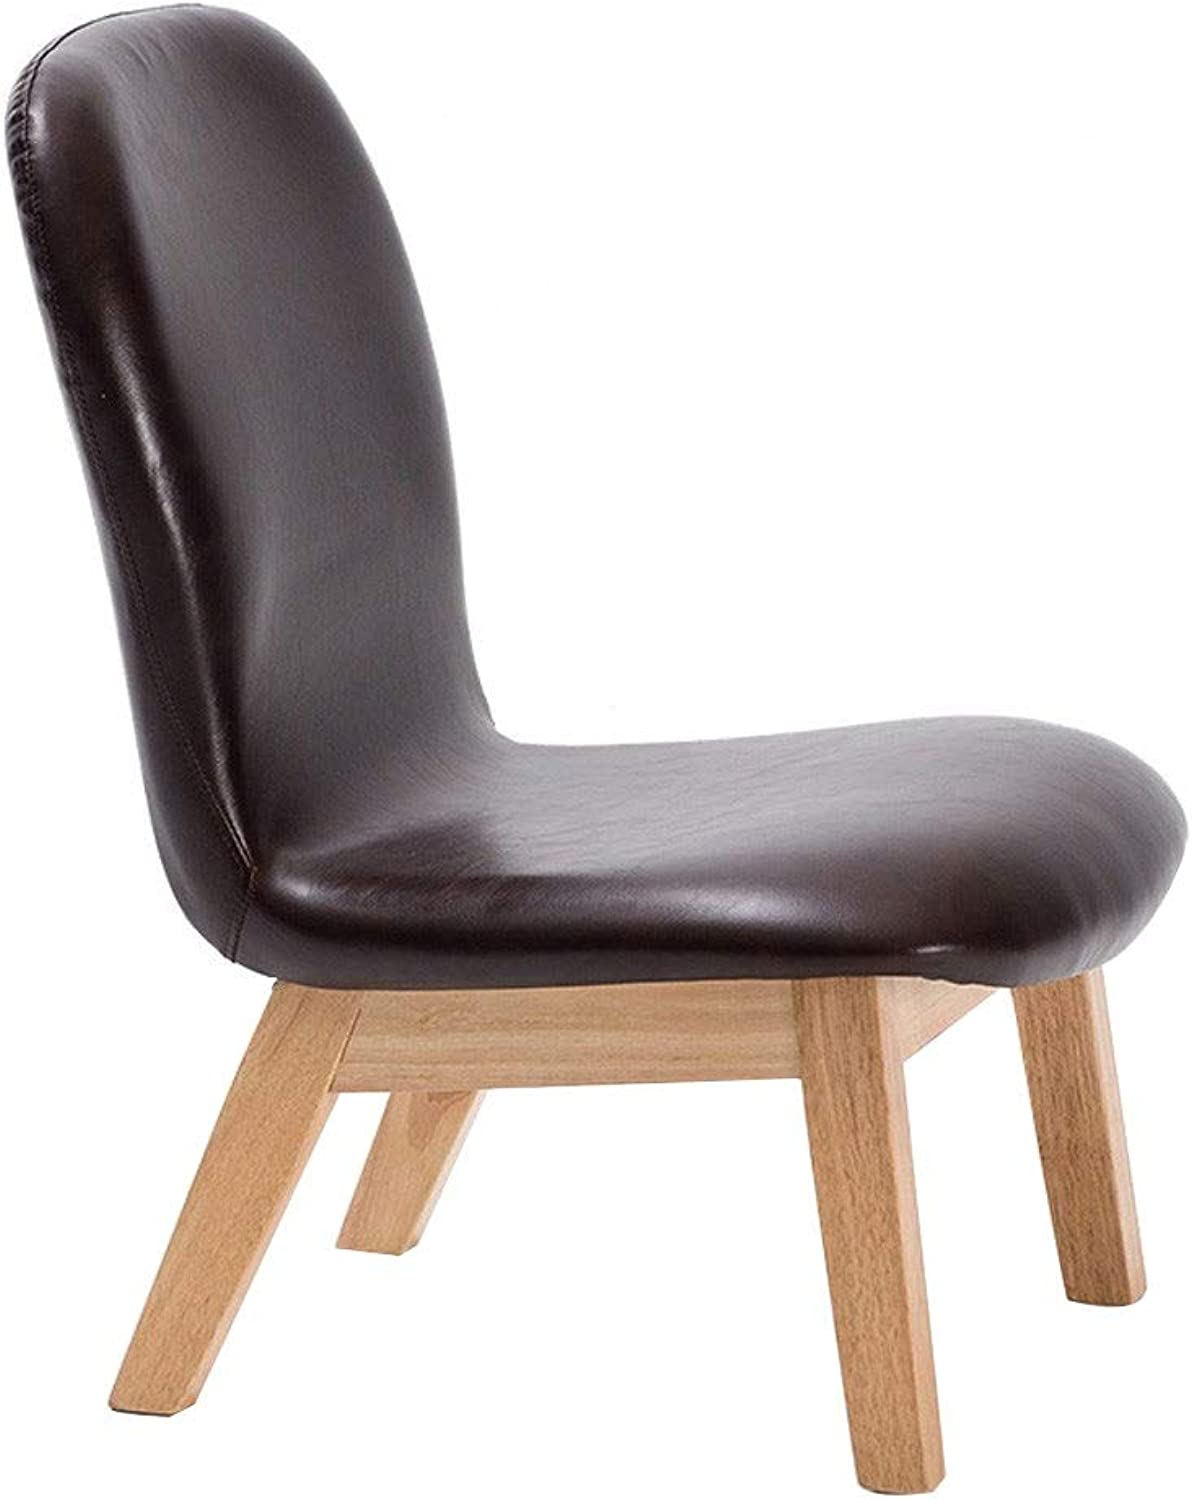 YULAN Solid Wood Stool Fabric Backrest Chair Simple shoes Bench Leisure Breastfeeding Stool Home Small Stool gold Waistline Design Waist Predector (color   Brown)